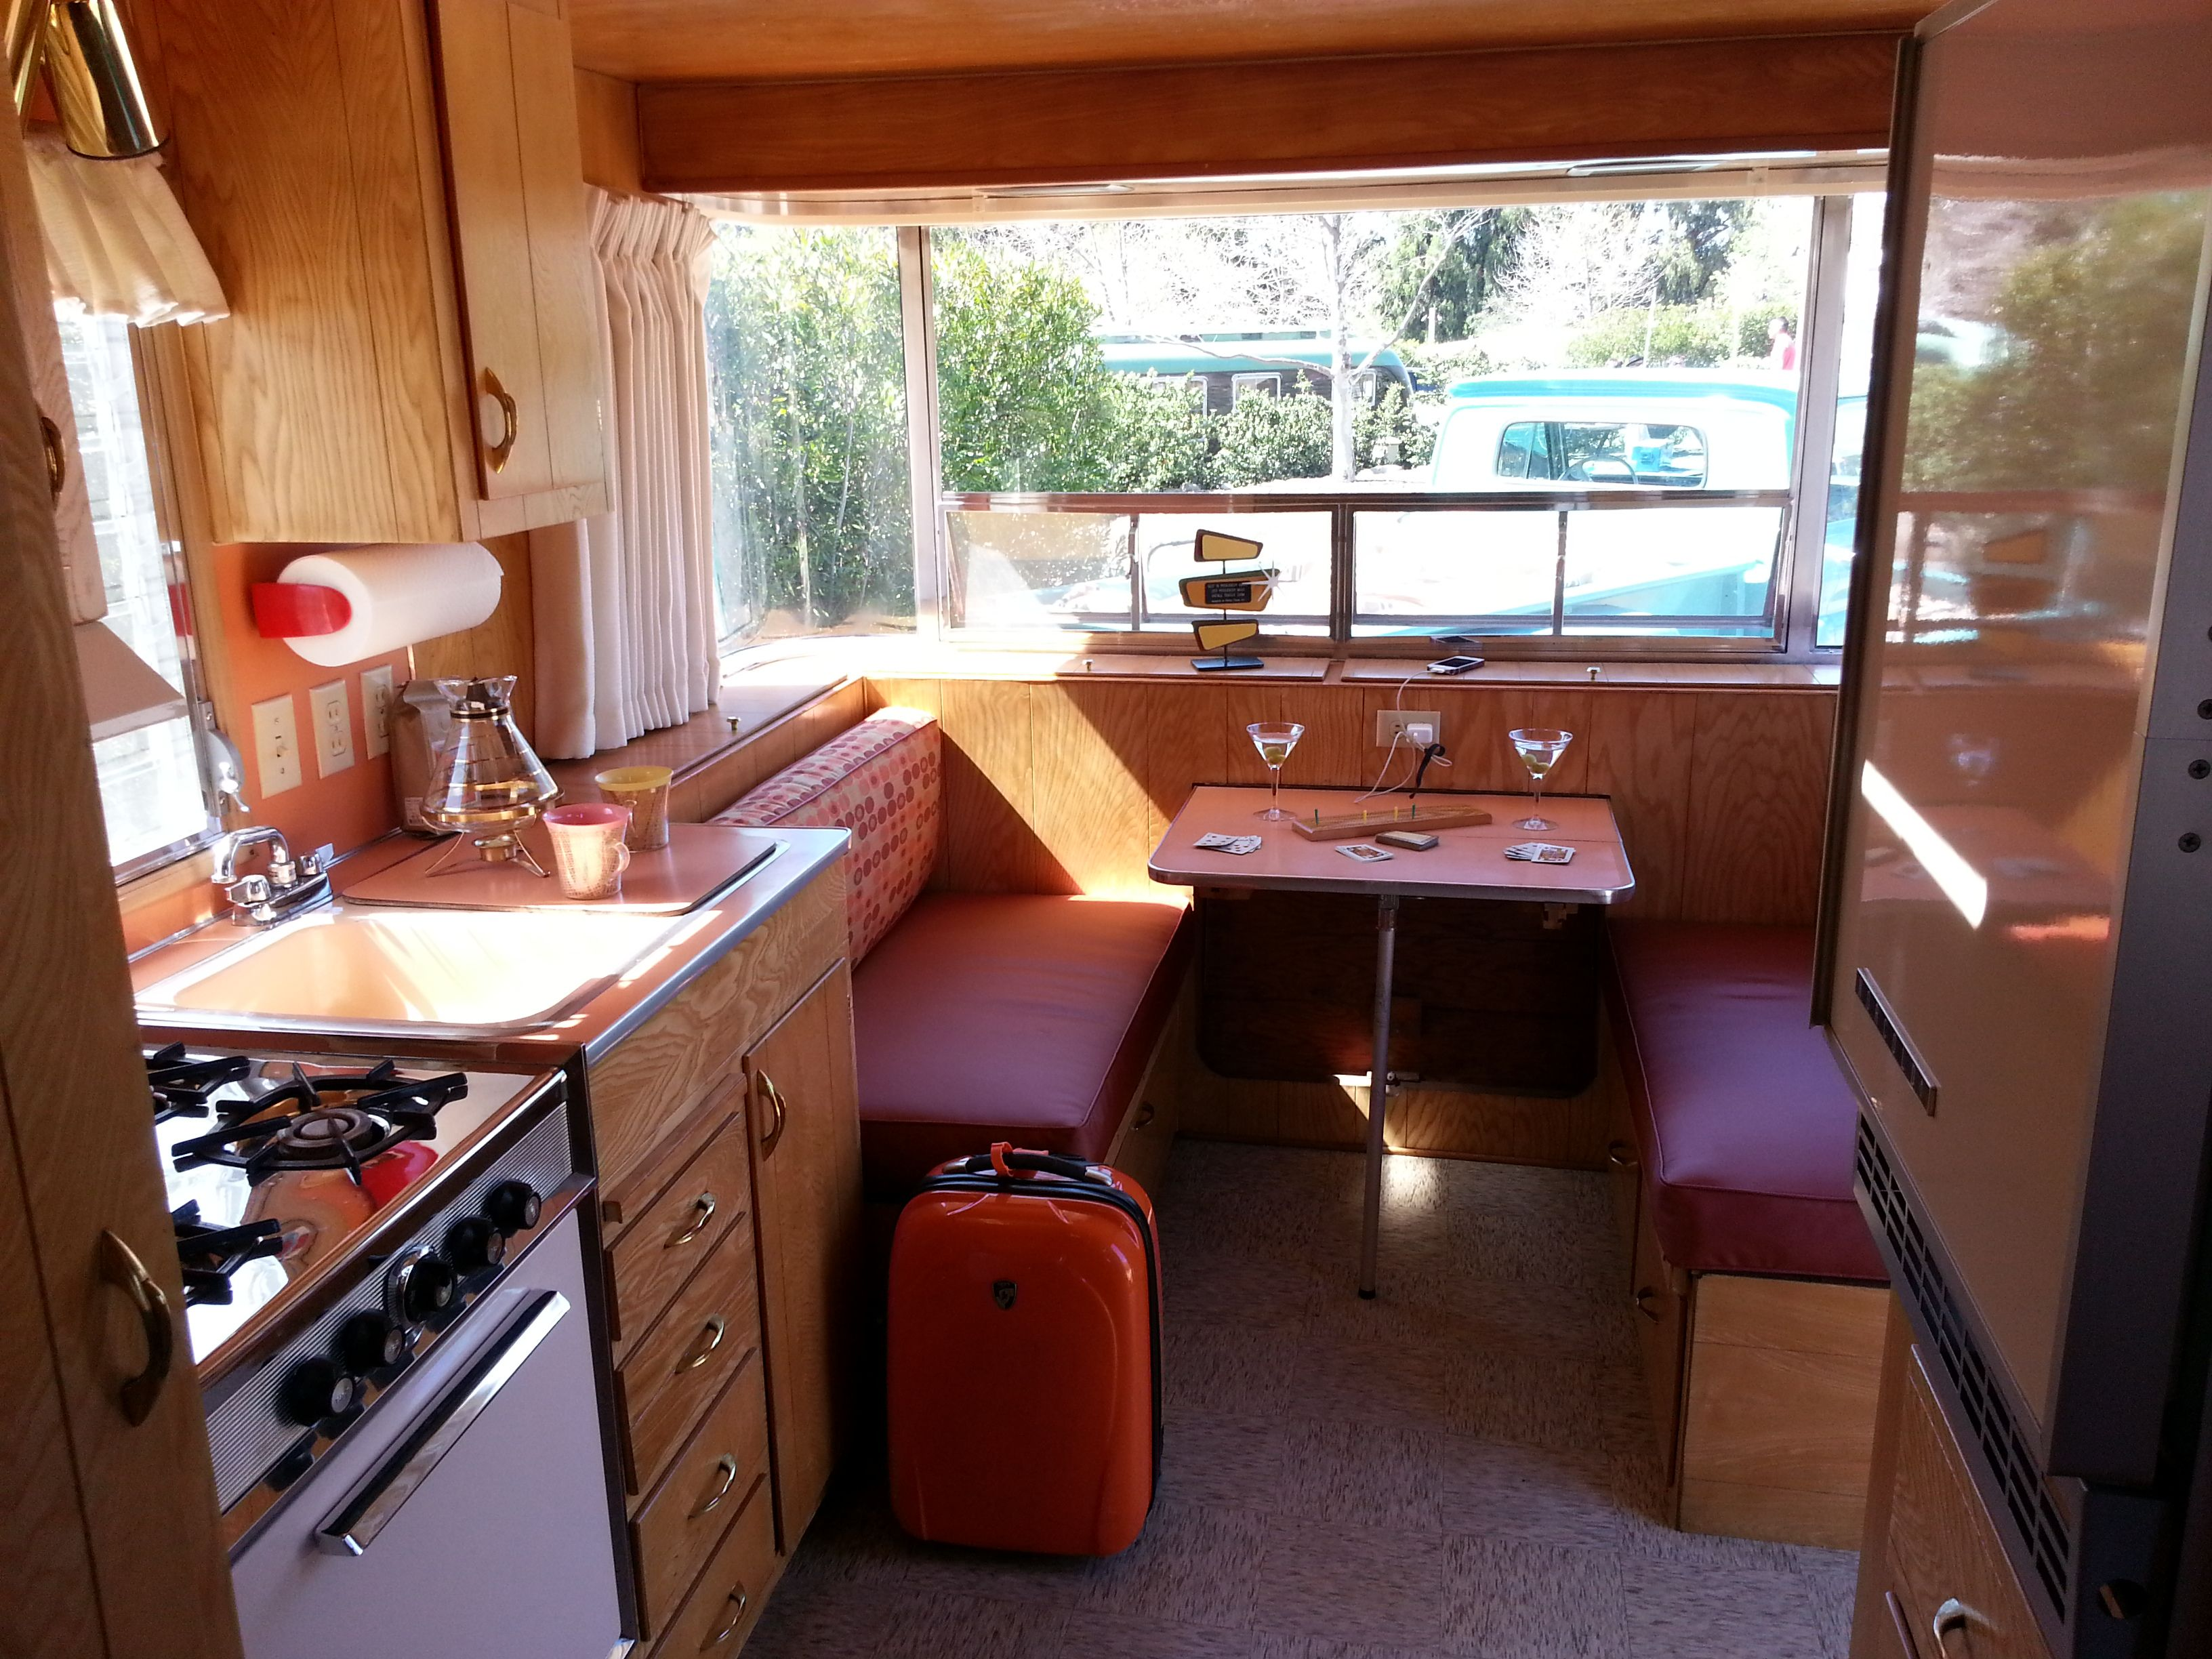 Interior Front Holiday House Vintage Trailer Travel House Vintage Camping Holiday Home